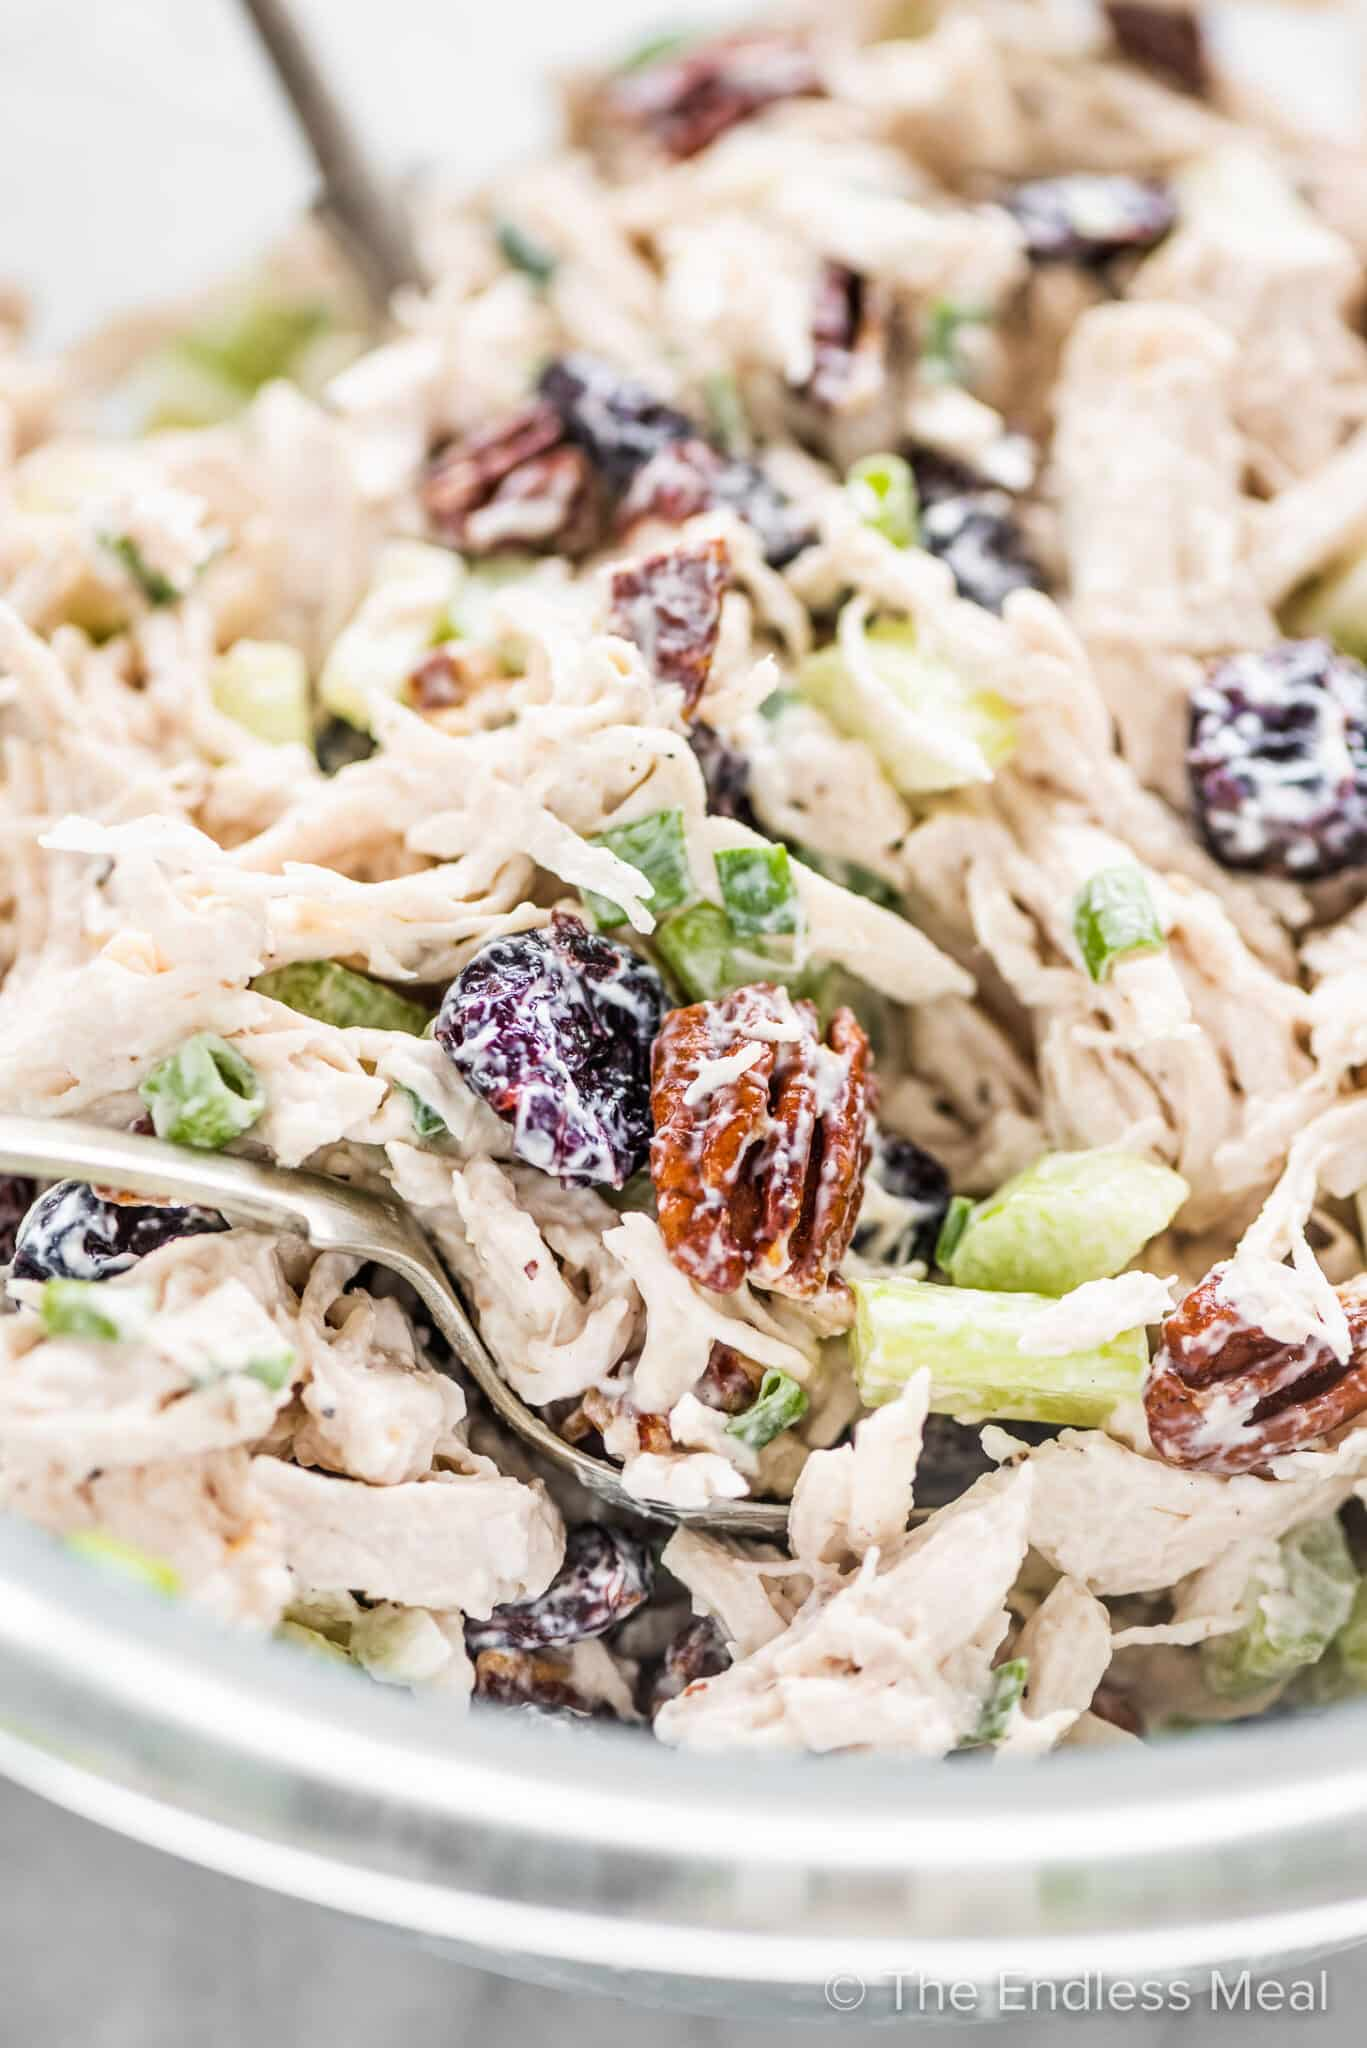 A close up of chicken salad with cranberries and pecans in a glass bowl.